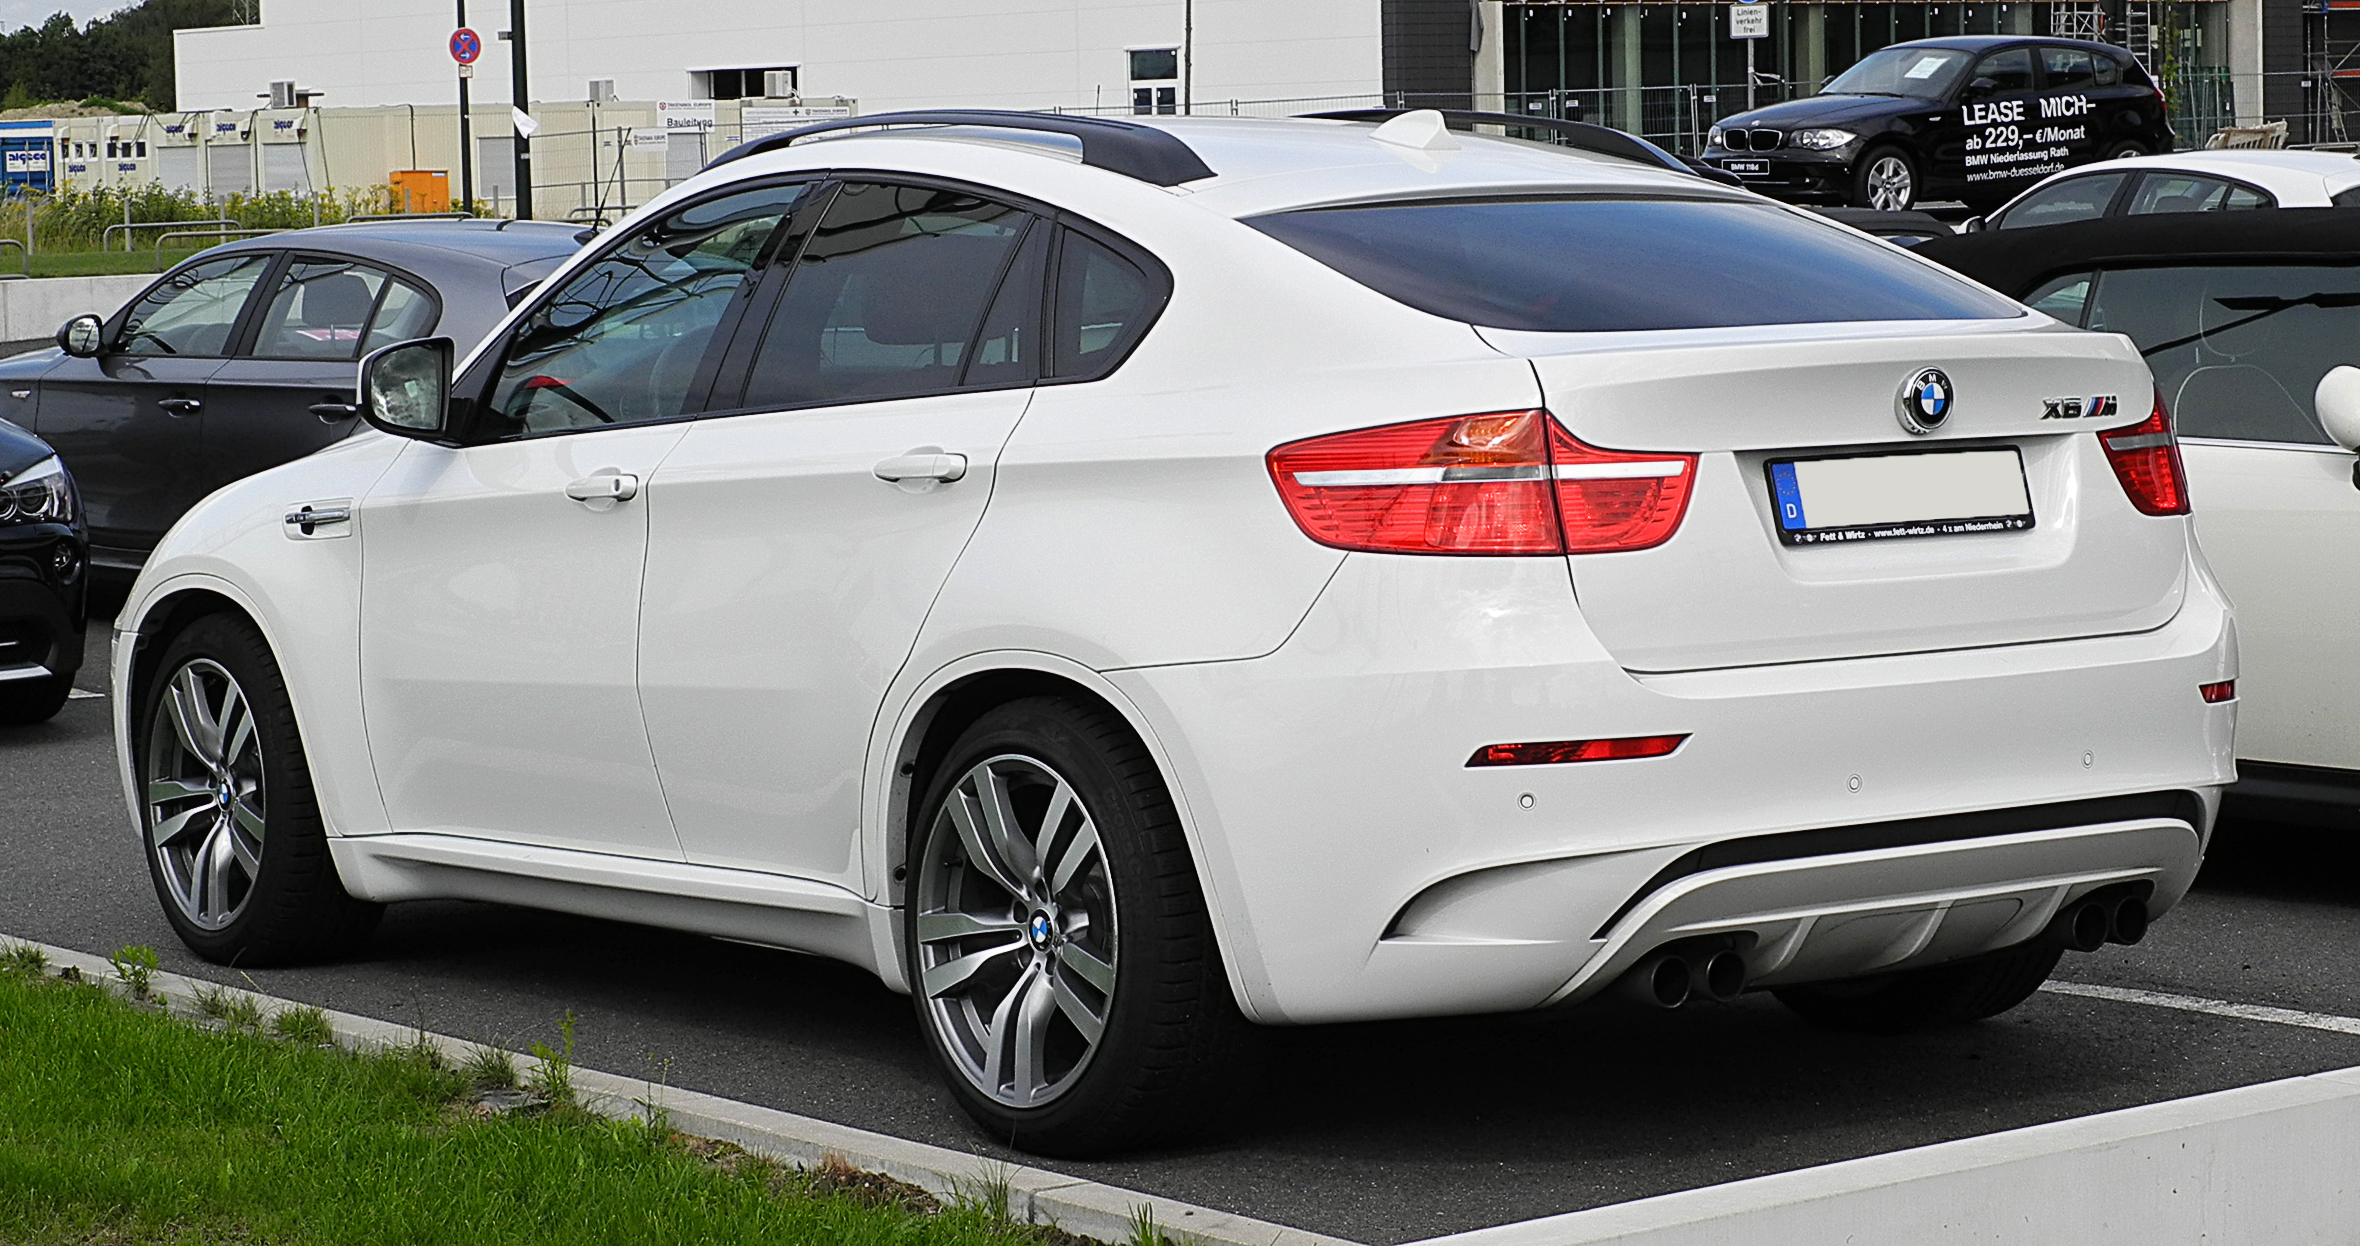 2014 Bmw X6 m – pictures, information and specs - Auto-Database.com